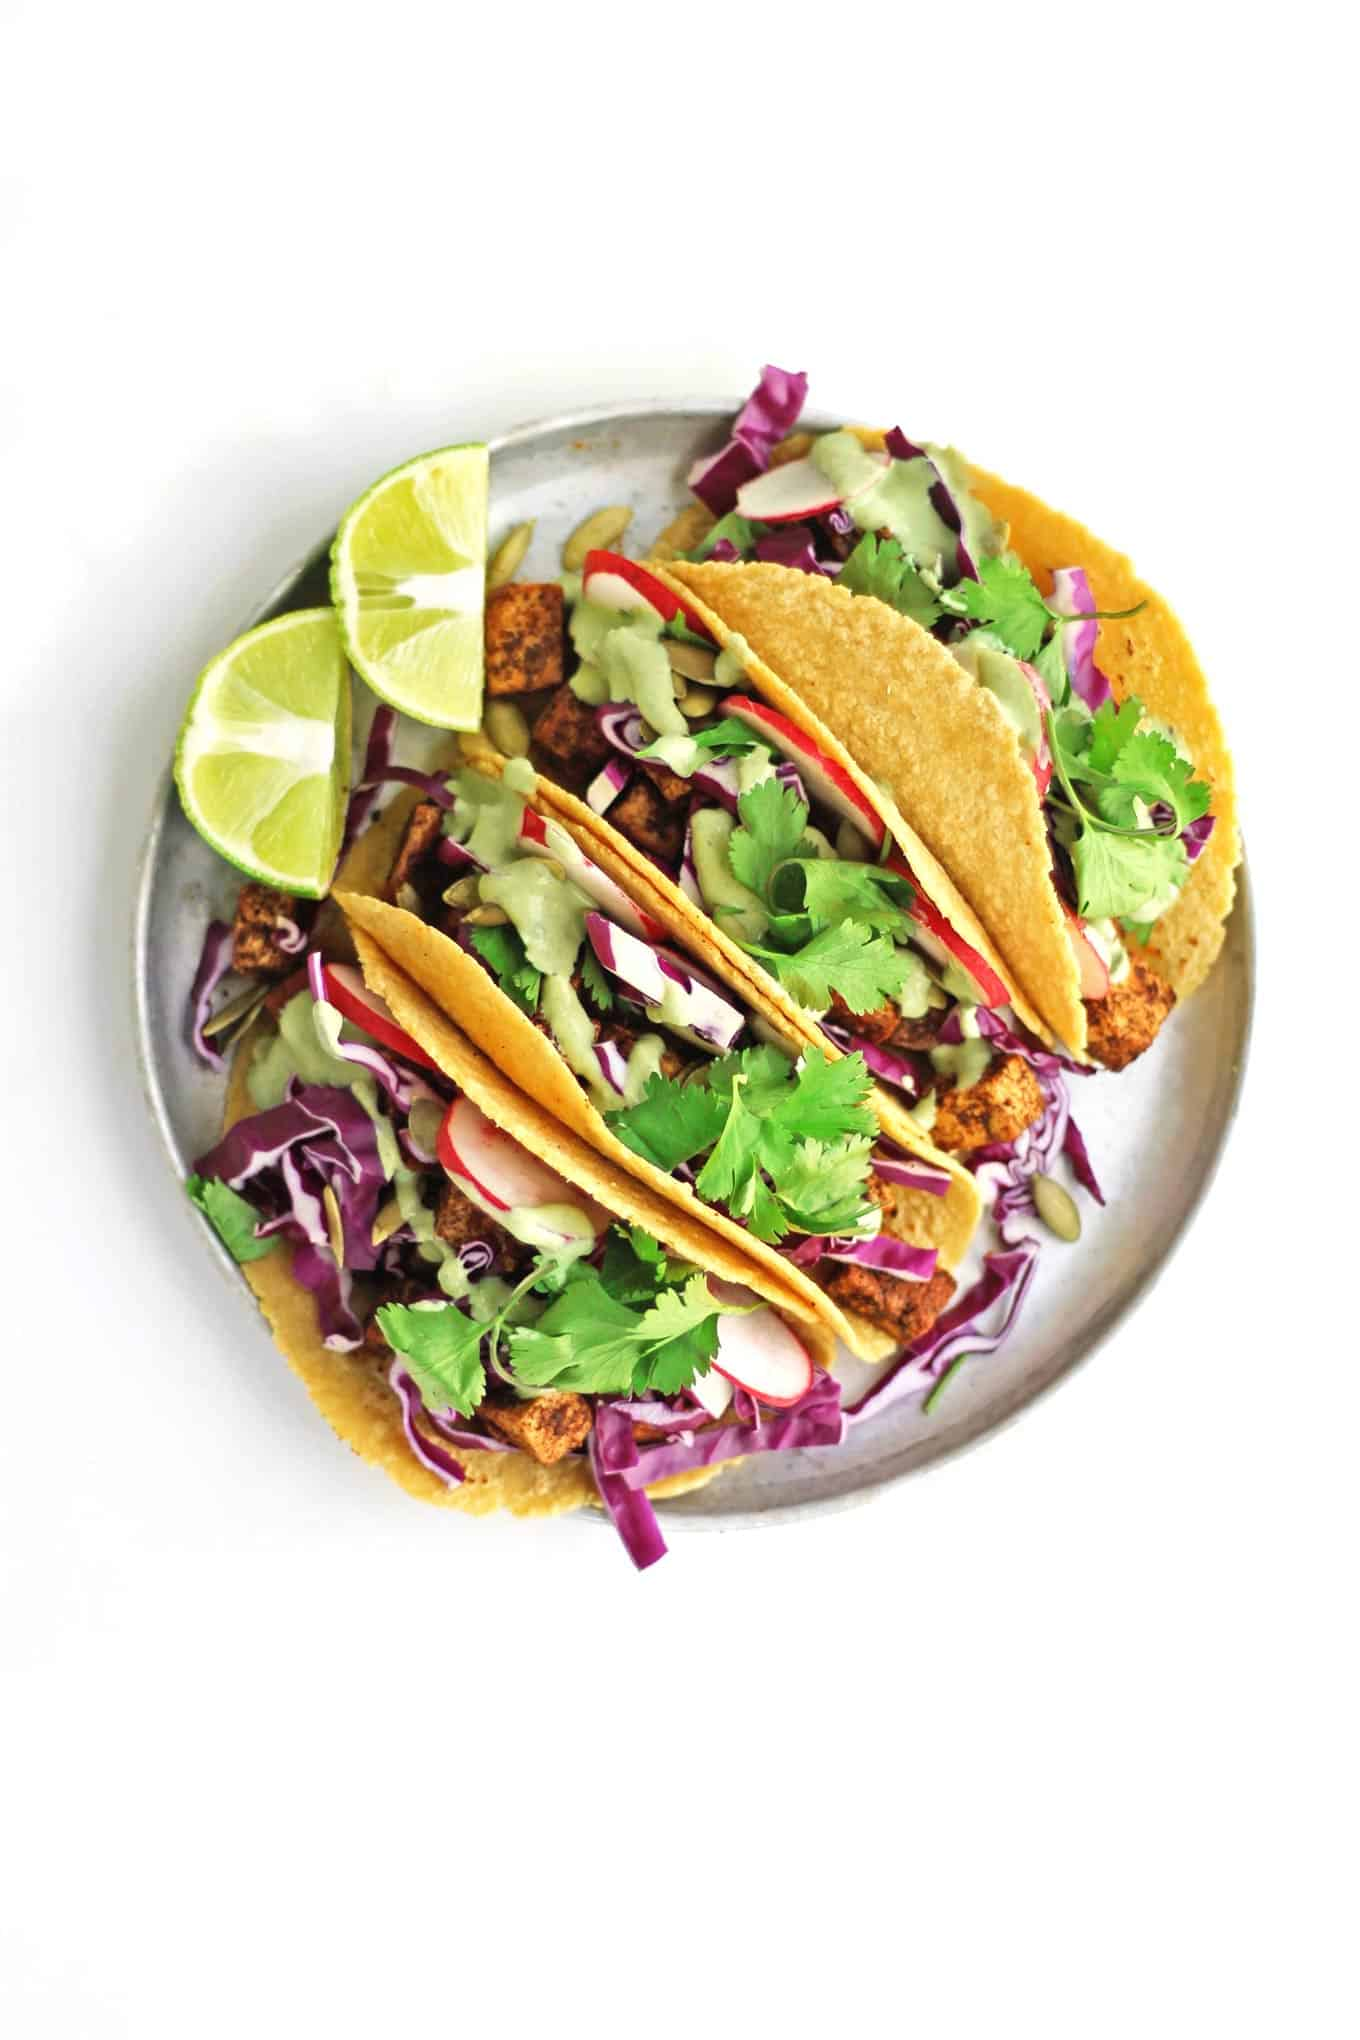 Loaded vegan tofu tacos recipe! // Rhubarbarians